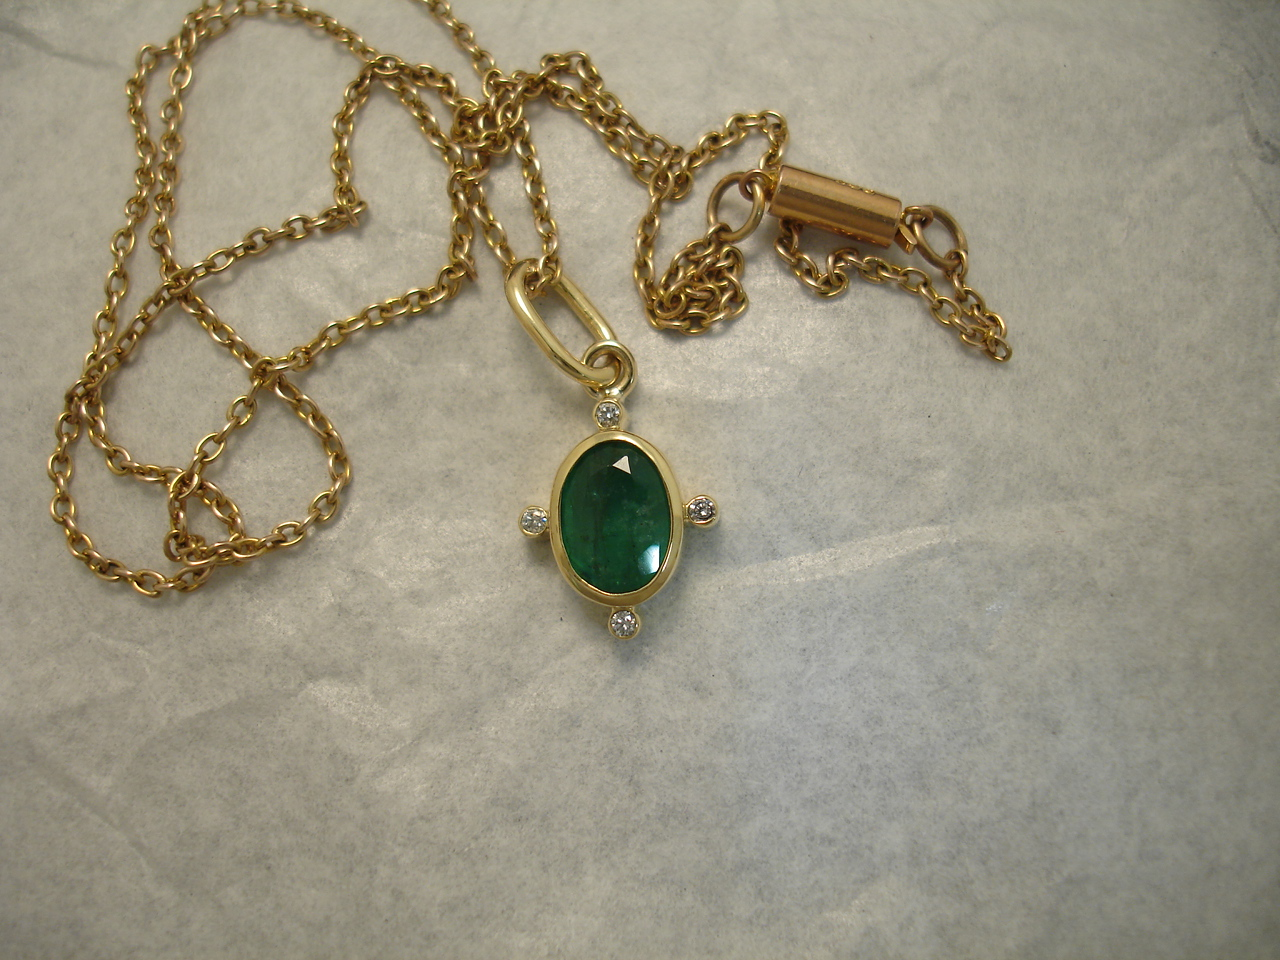 1 26ct Natural Bright Green Emerald 18ct Gold Pendant